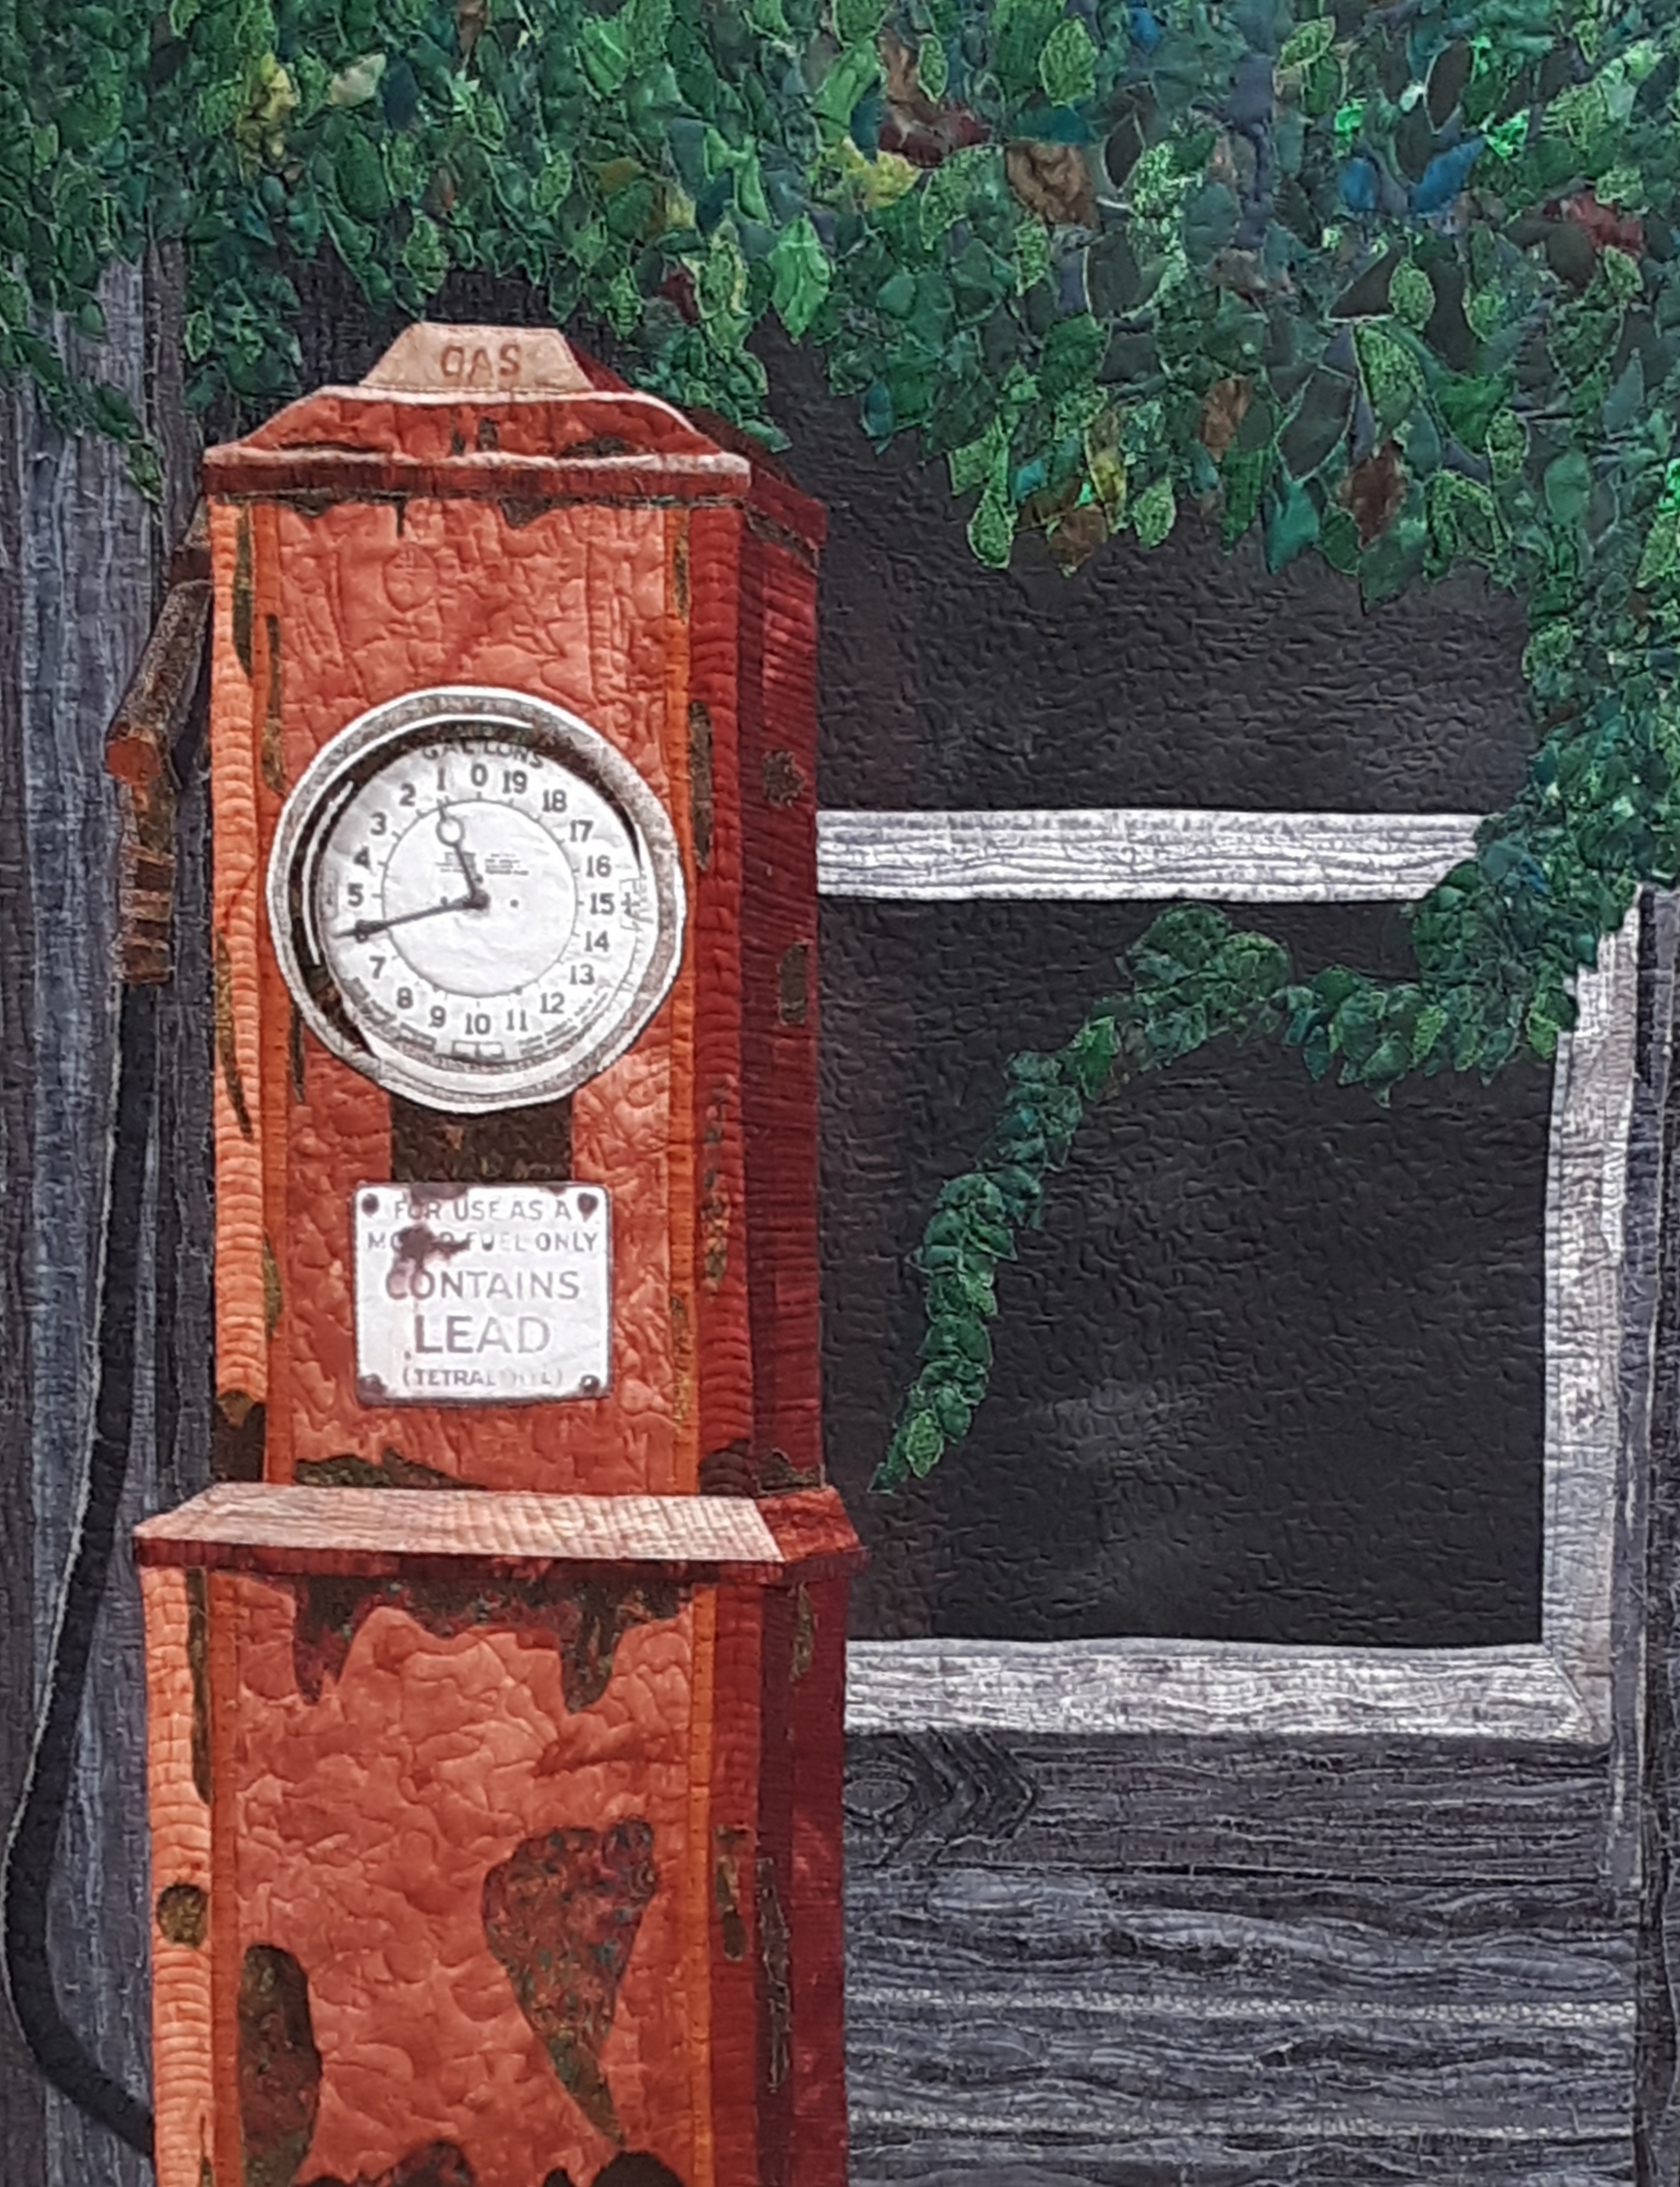 Art quilt, gas pump, fabric